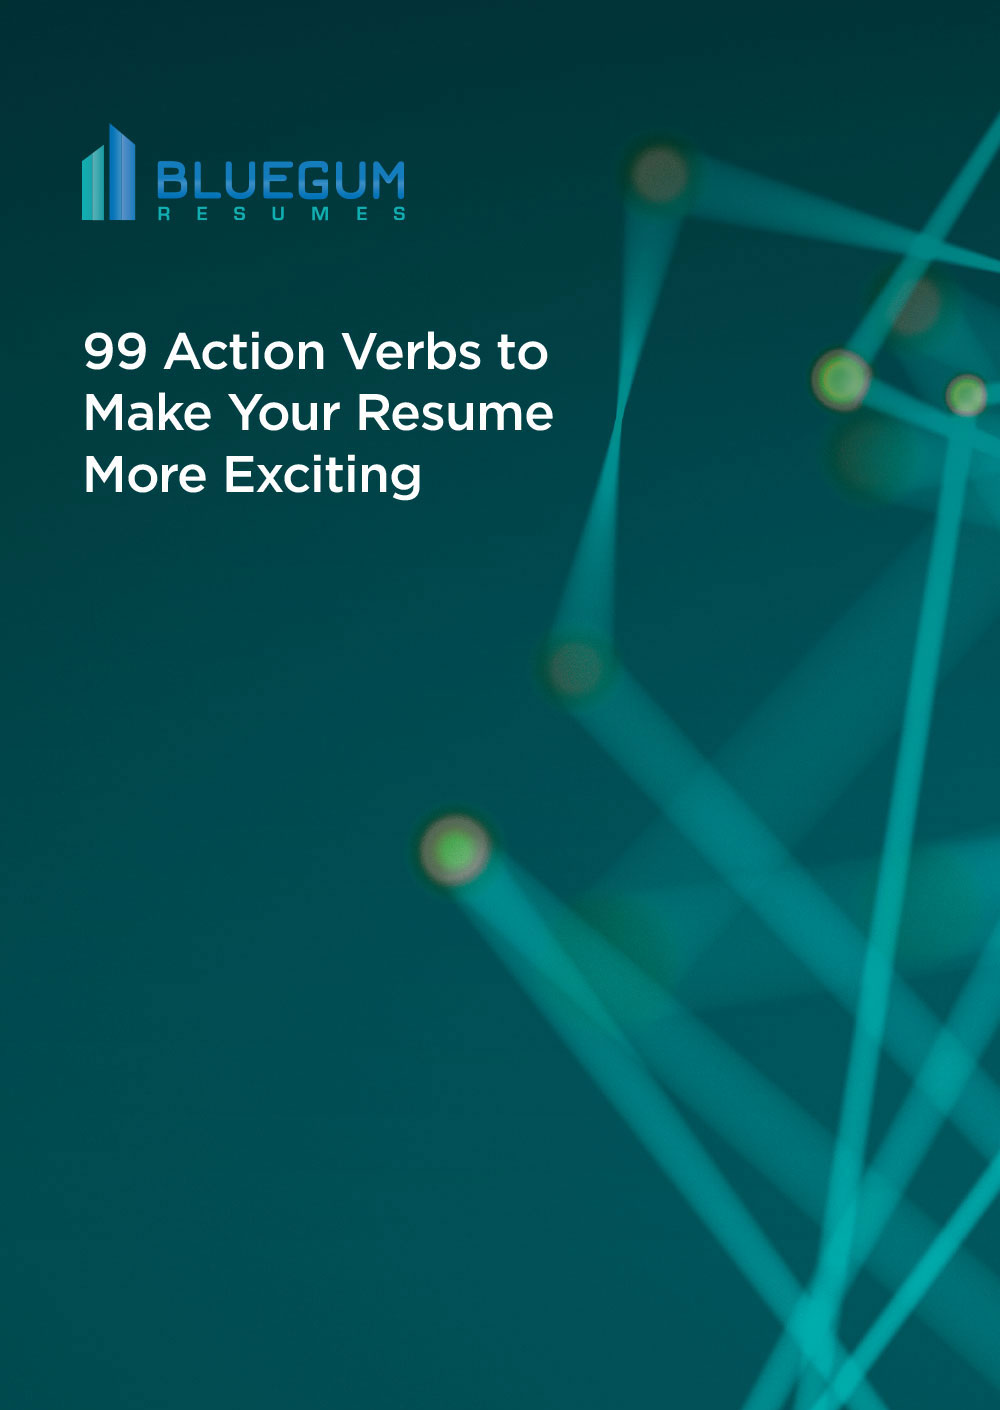 99 Action verbs to make your resume more exciting